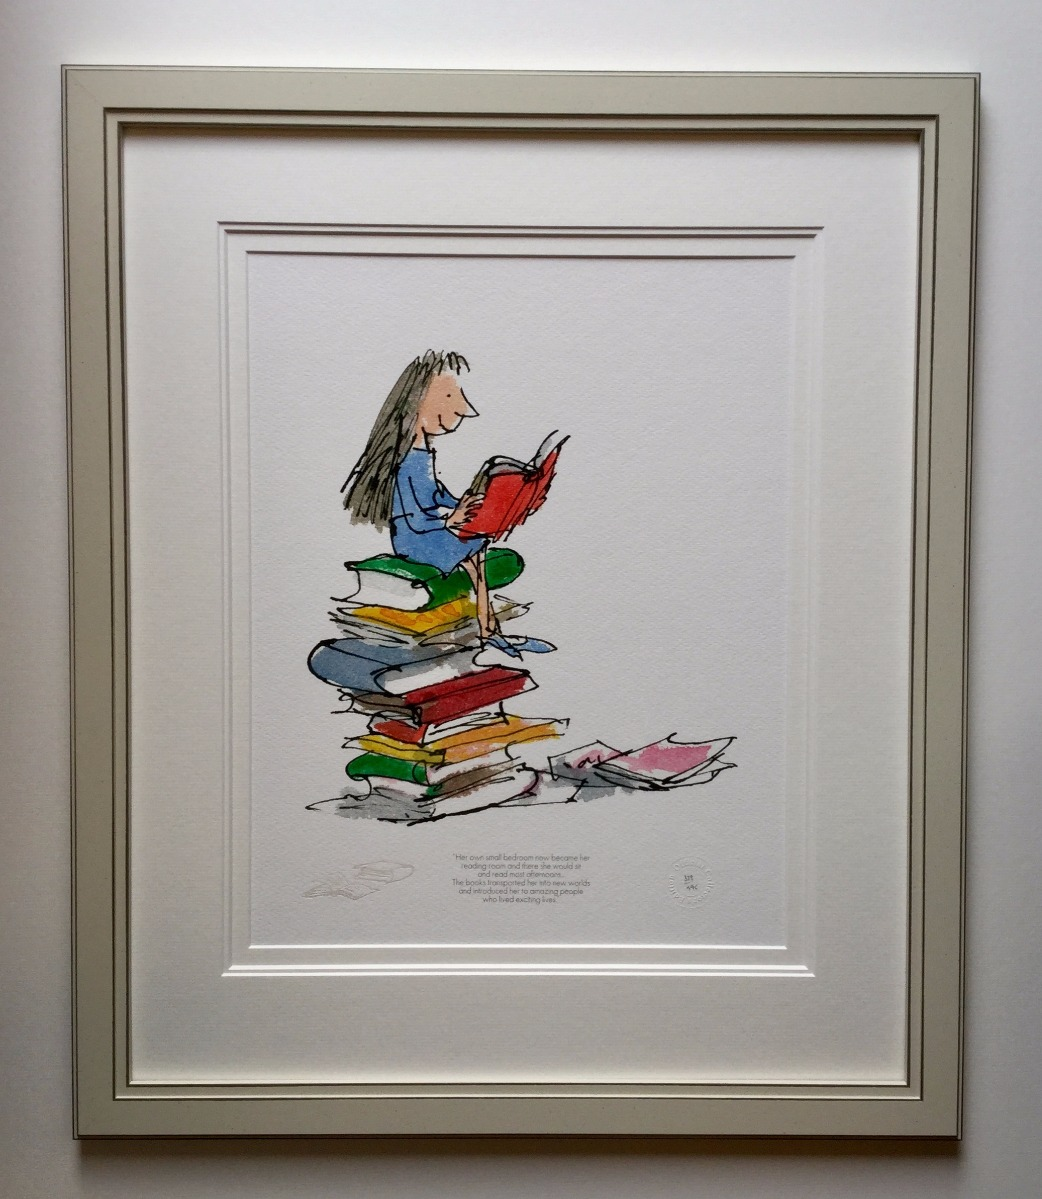 Matilda - Her Own Small Bedroom became Her Reading Room by Quentin Blake